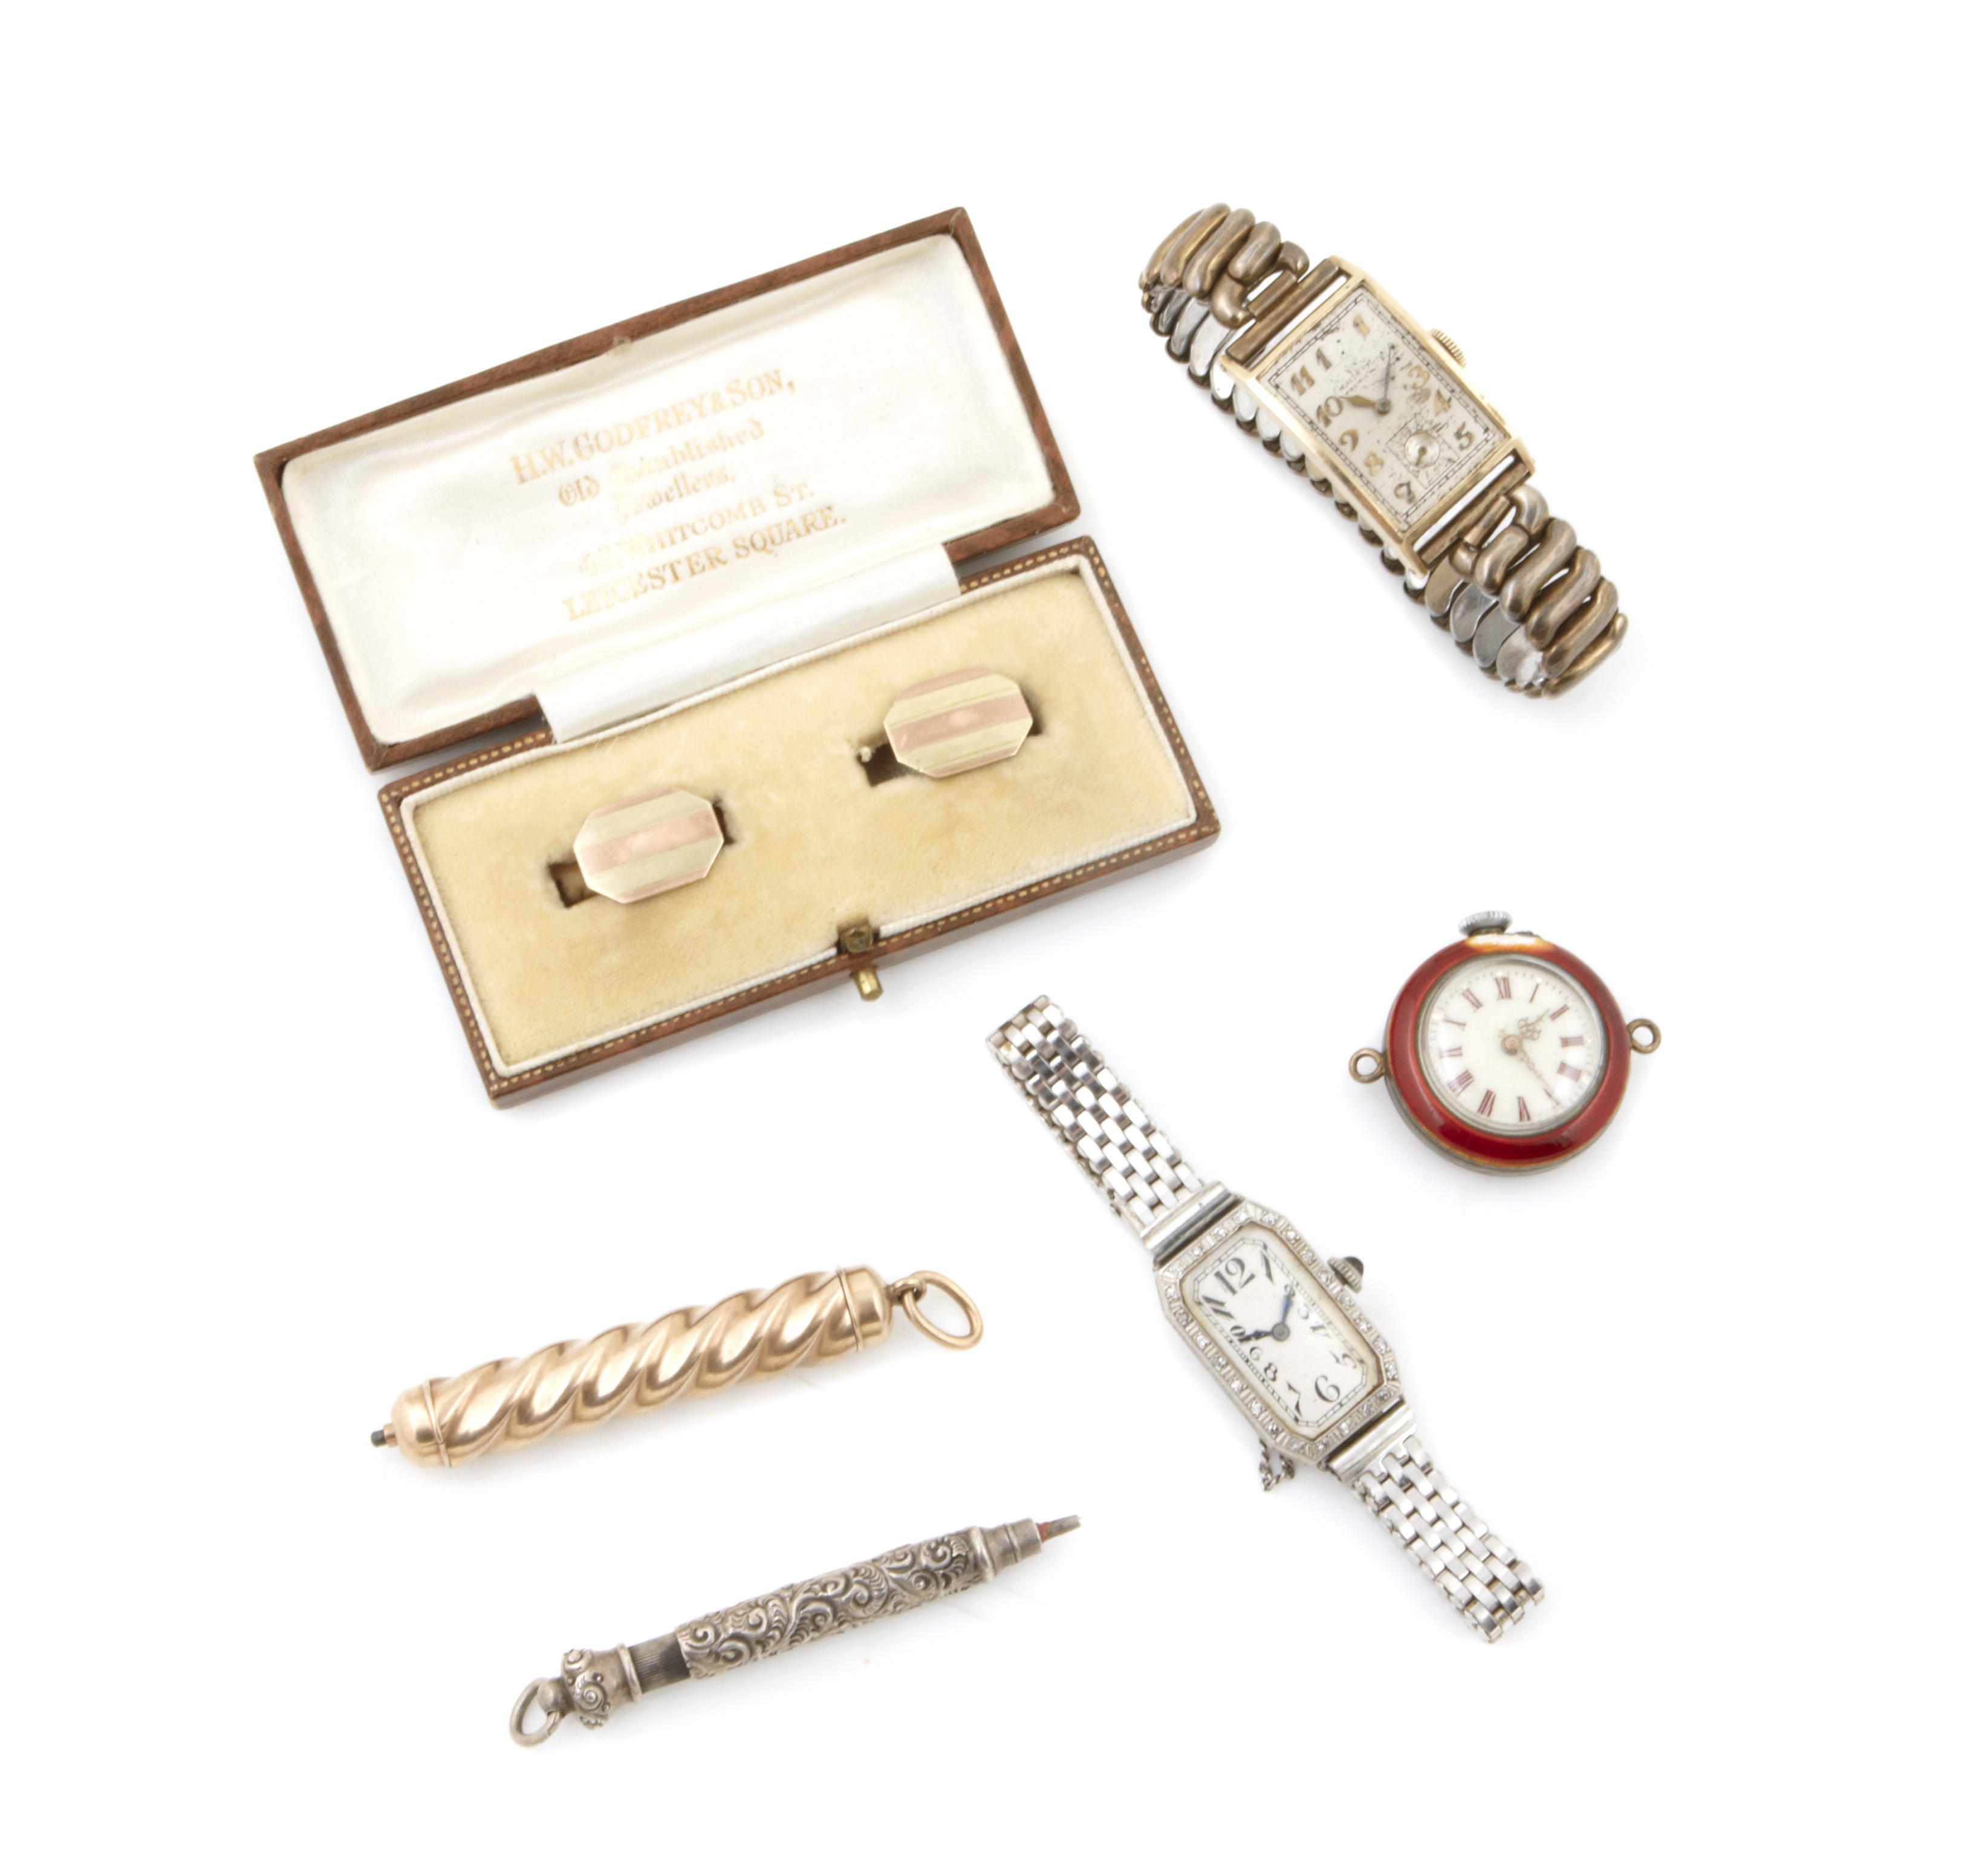 A collection watches and accessories including;